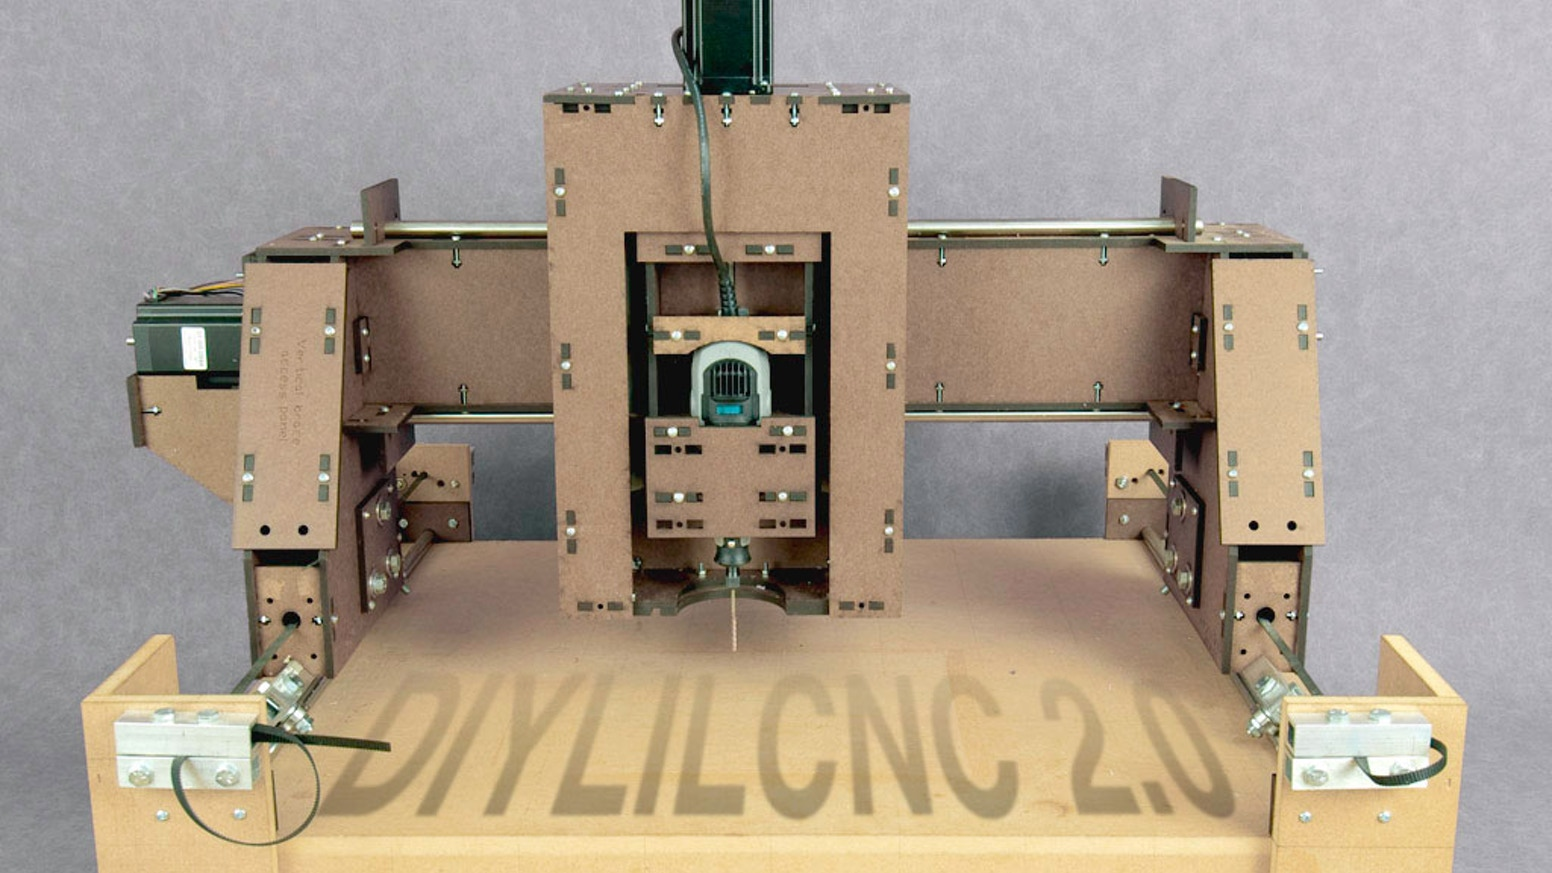 Do It Yourself Home Design: Open-source Plans For A Low-cost CNC Mill